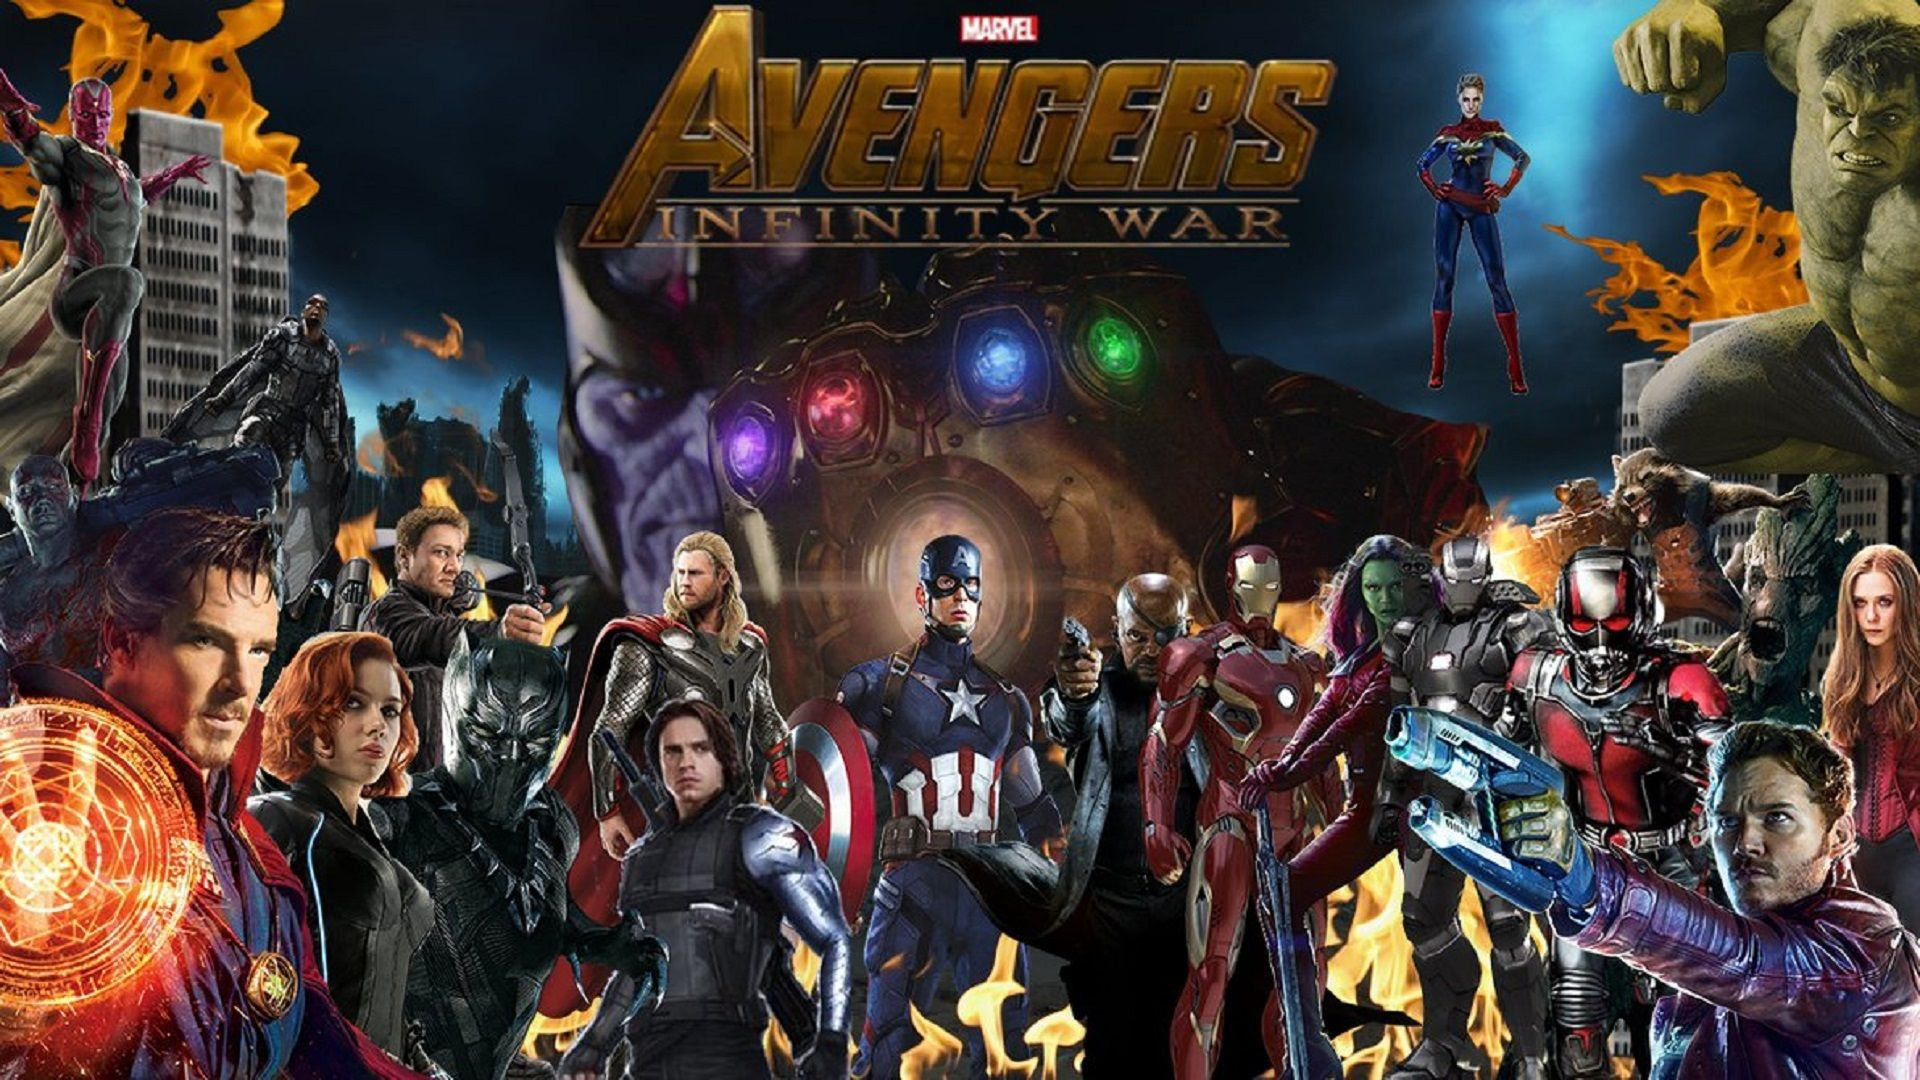 Avengers Infinity War Release Date Trailer And What To Expect